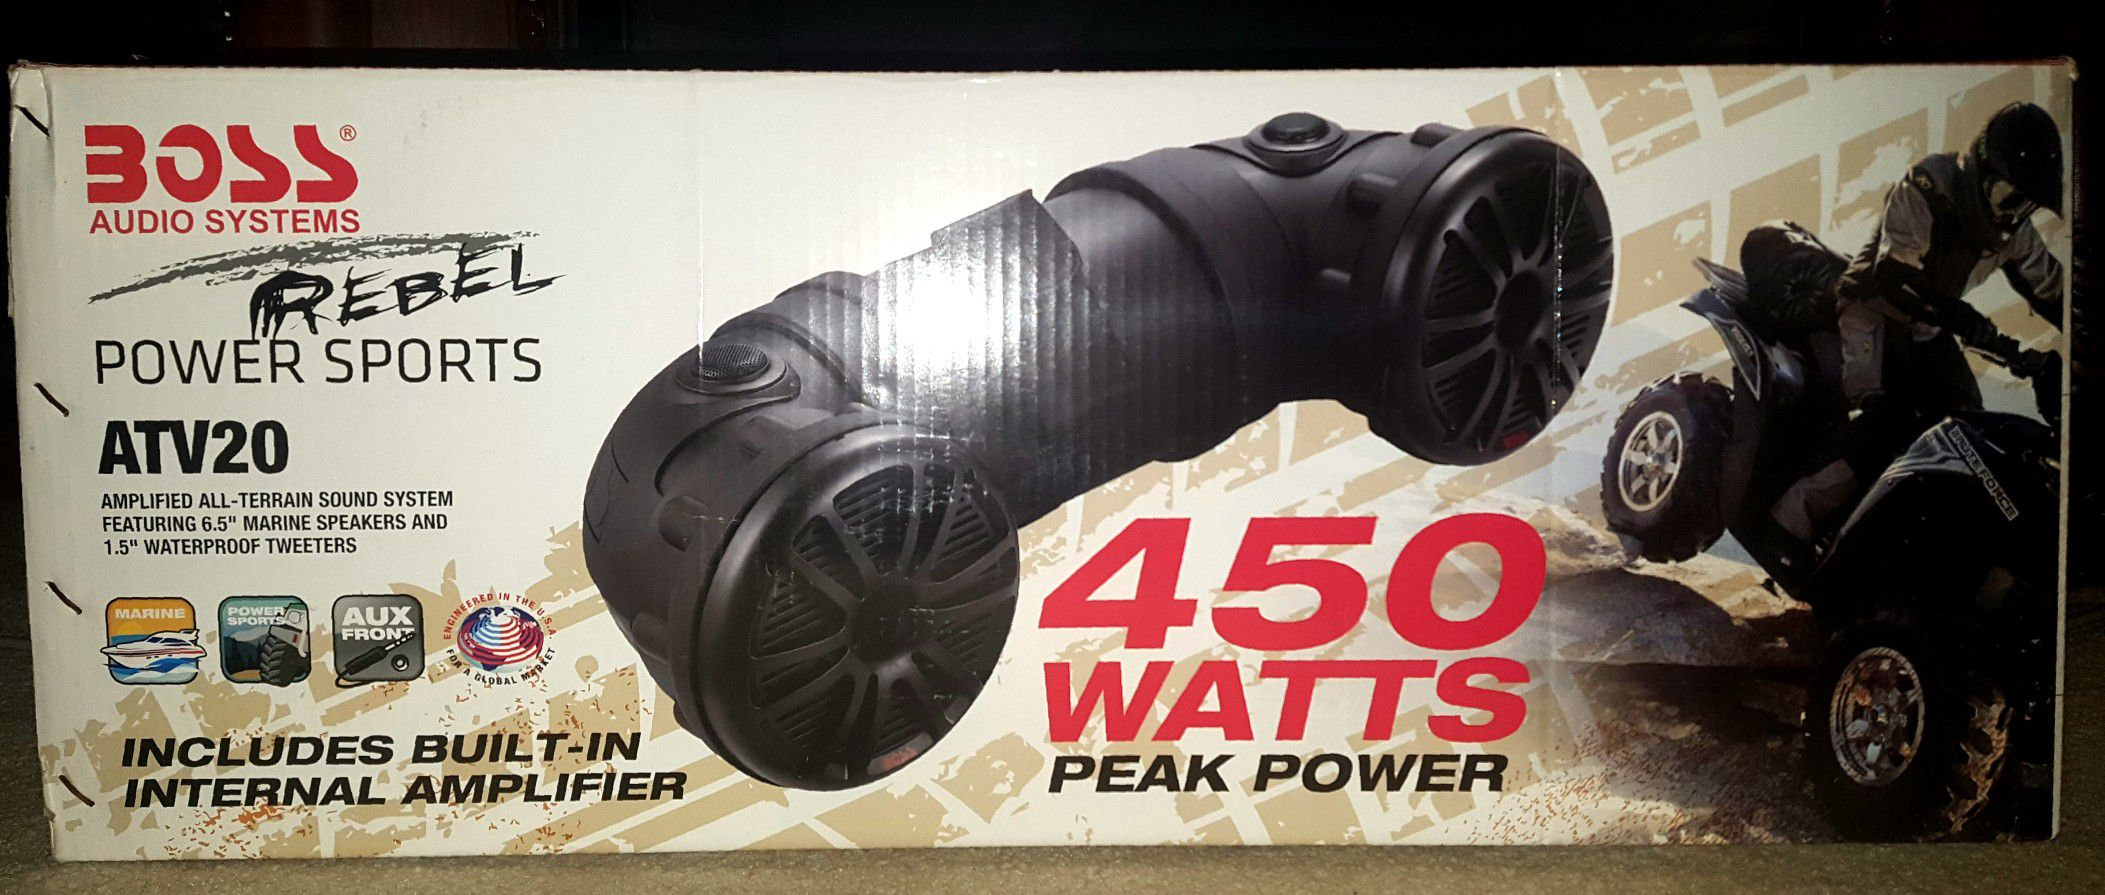 Rebel Power Sports ATV20 Outdoor Sound System by Boss Audio